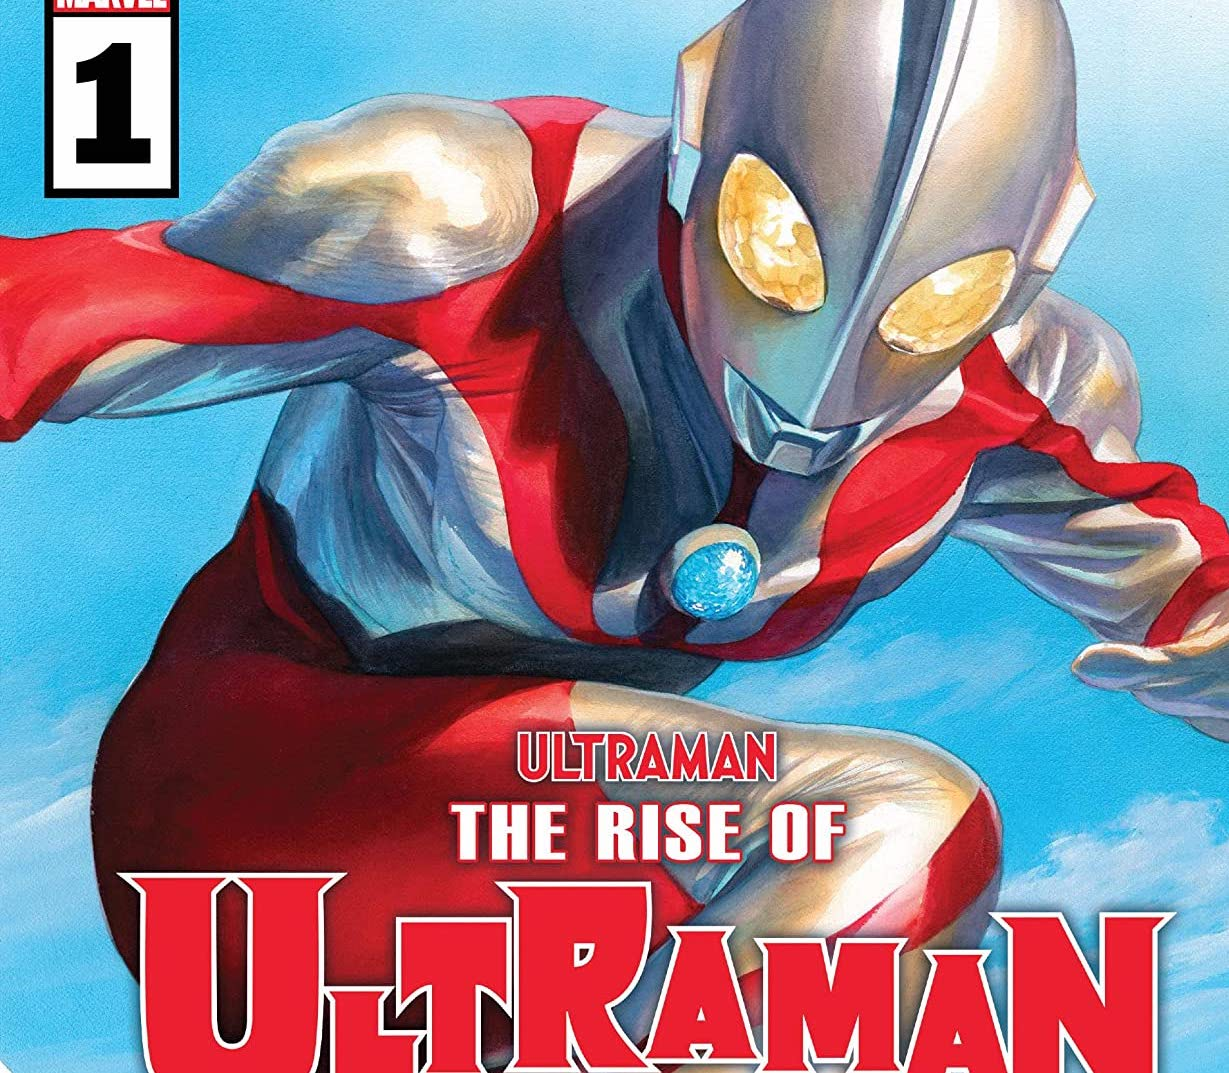 'The Rise of Ultraman' #1 review